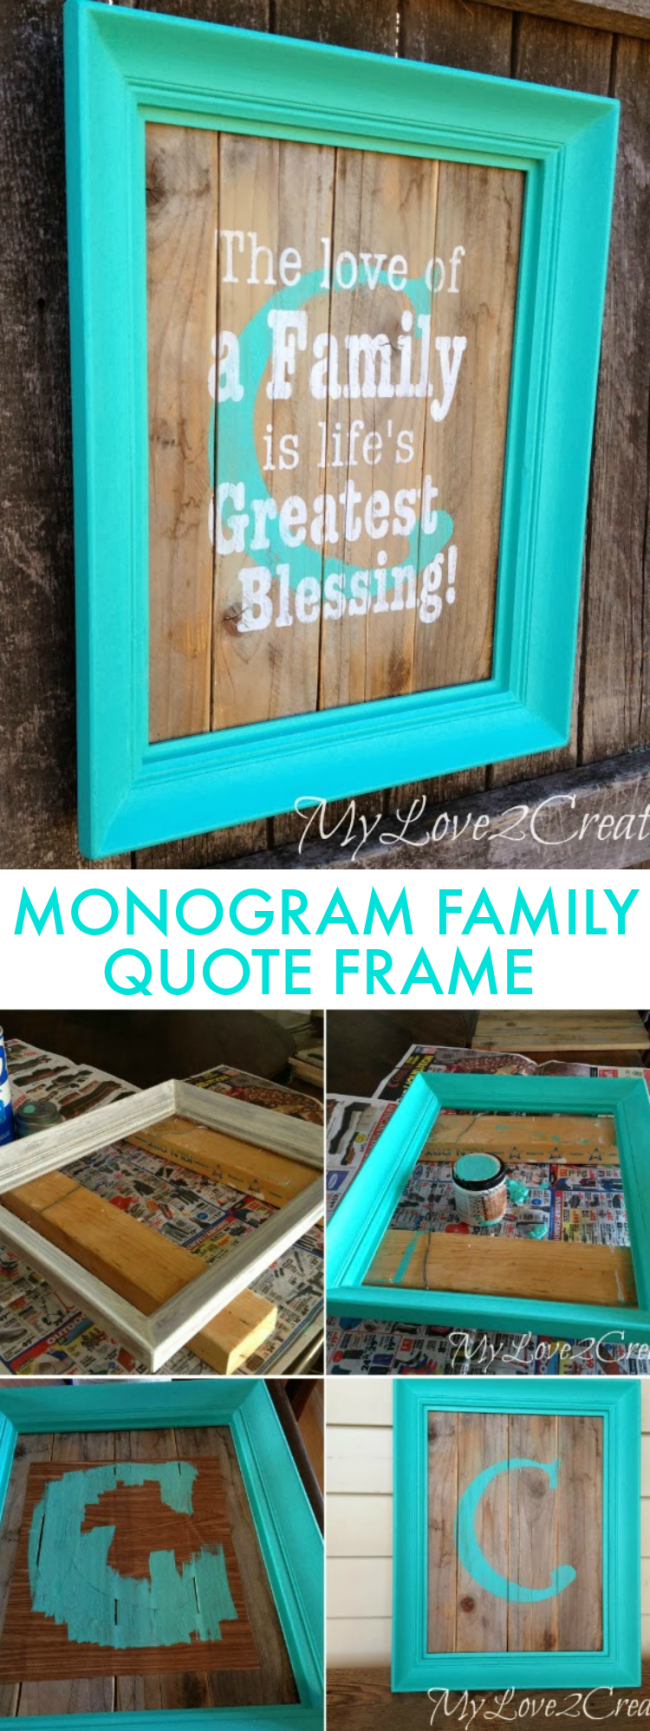 diy monogram frame with family quote